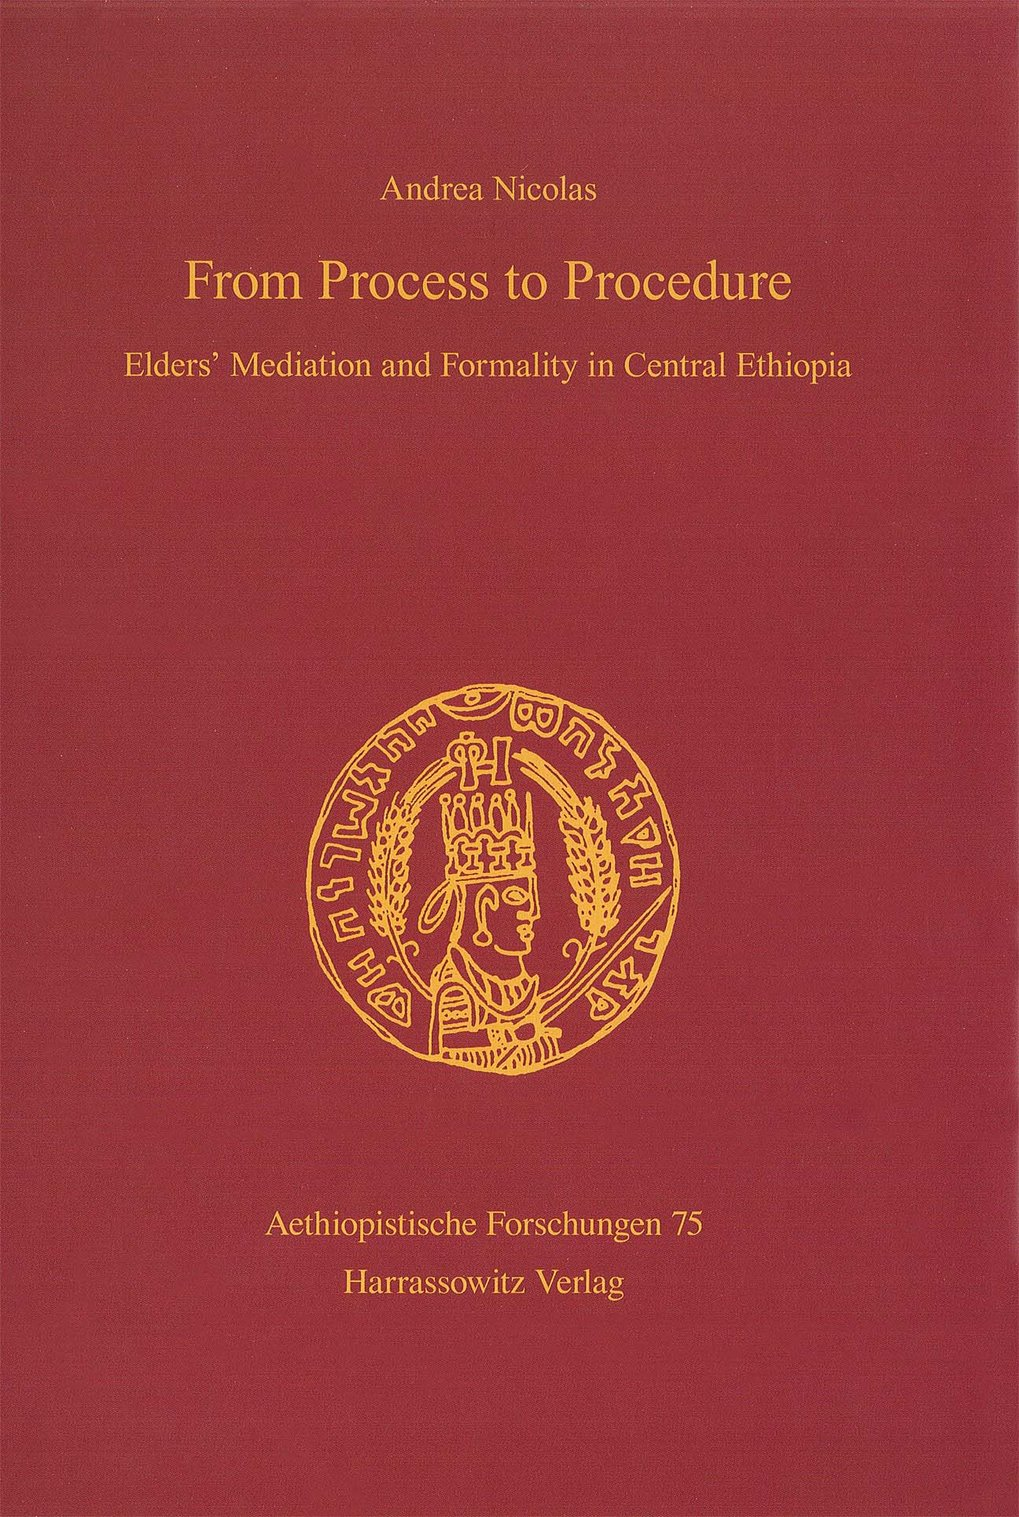 From Process to Procedure: elders' mediation and formality in Central Ethiopia